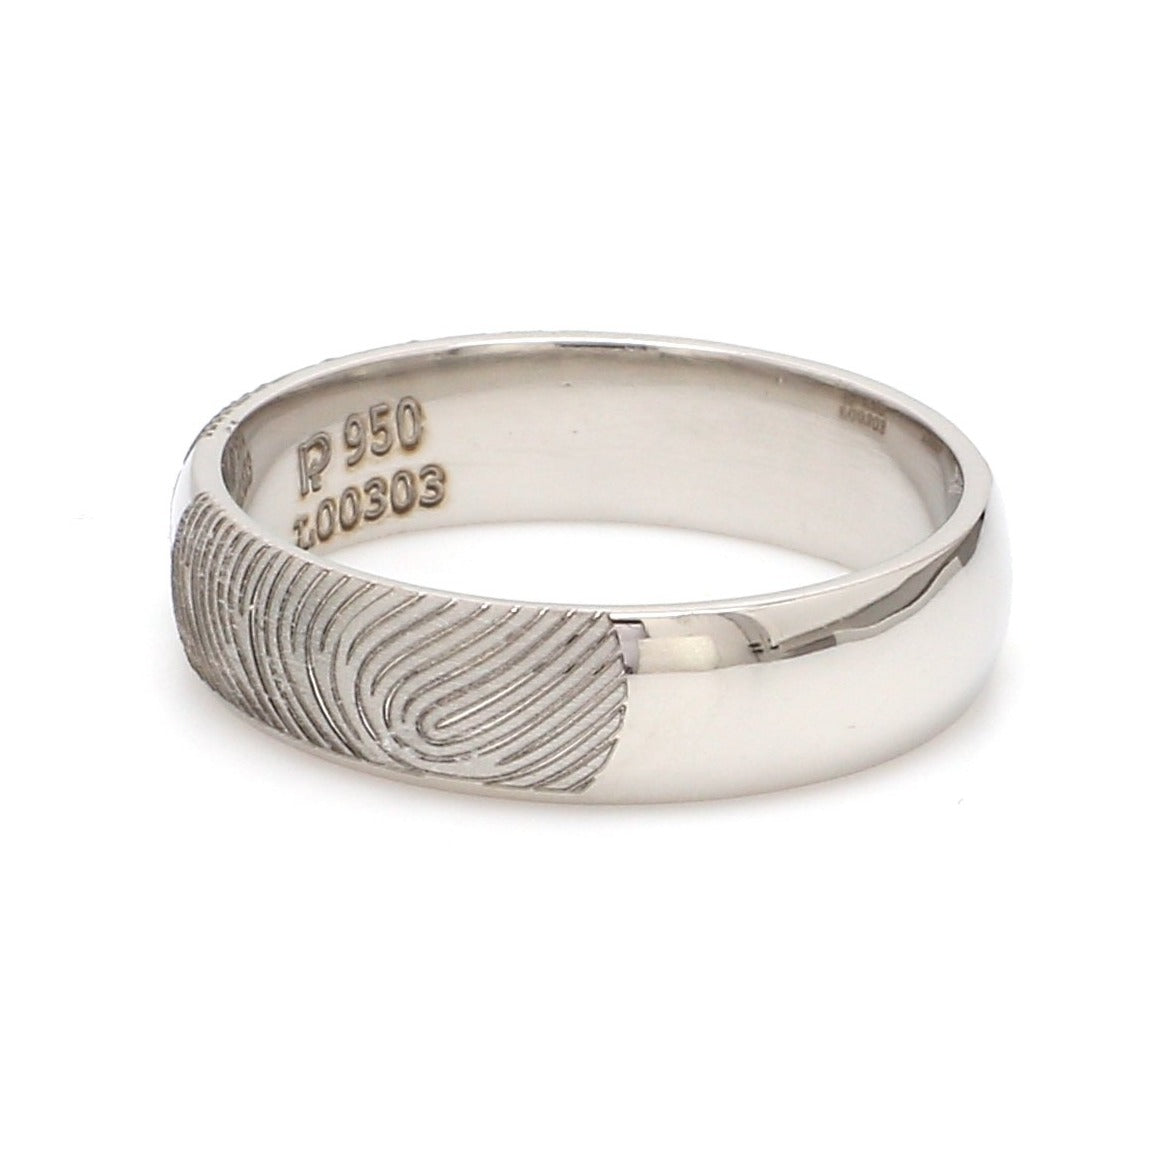 Customized Fingerprint Engraved Platinum Rings with Diamonds for Couples